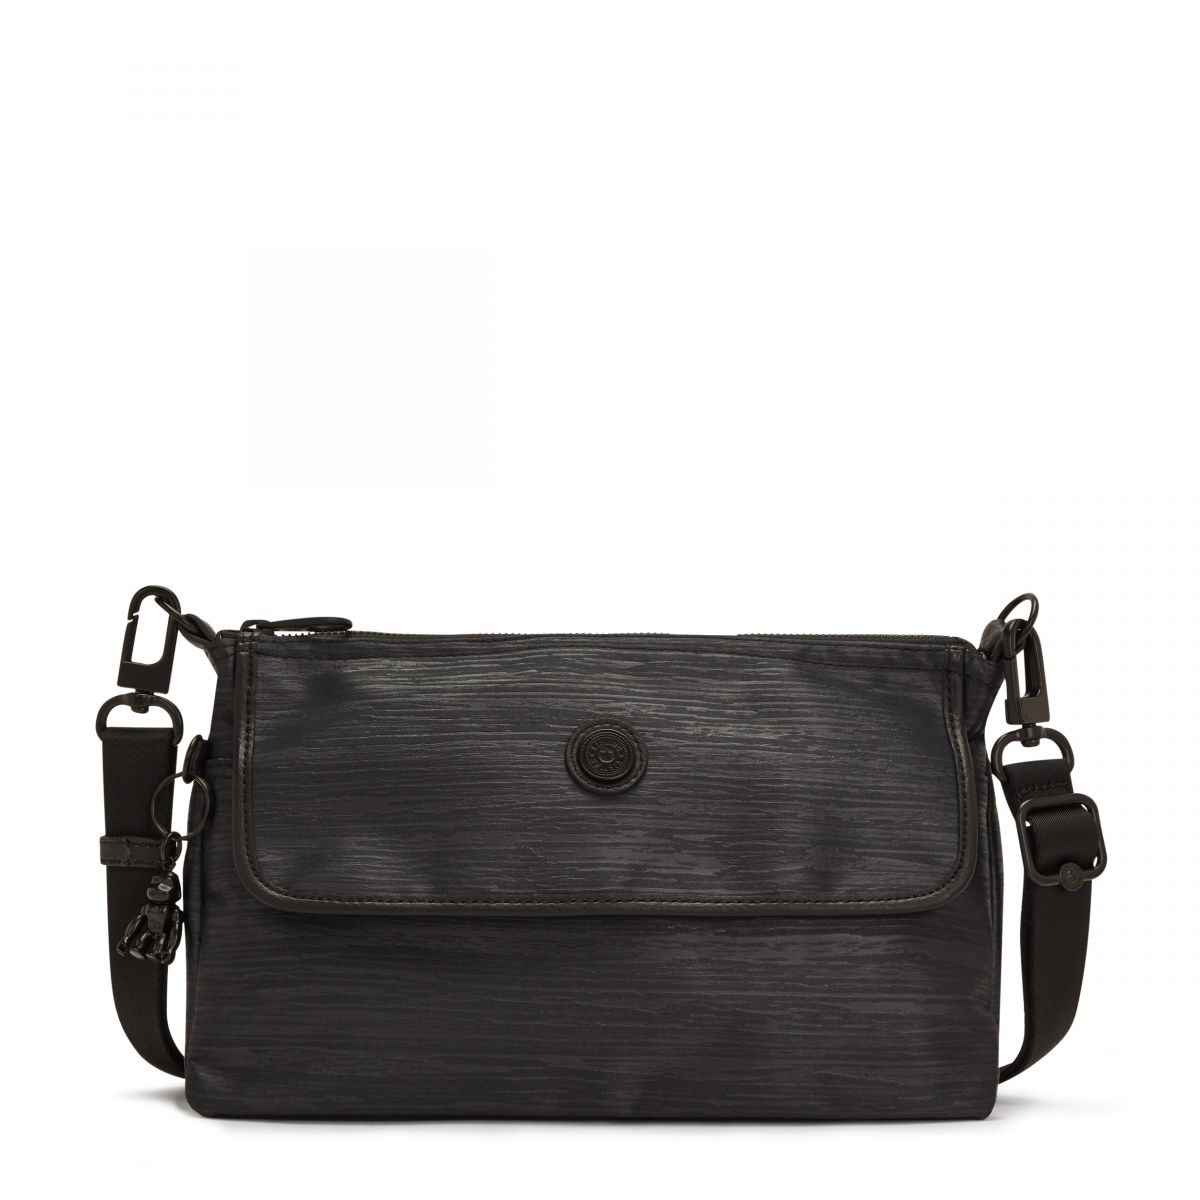 ETKA M BAGS by Kipling - Front view